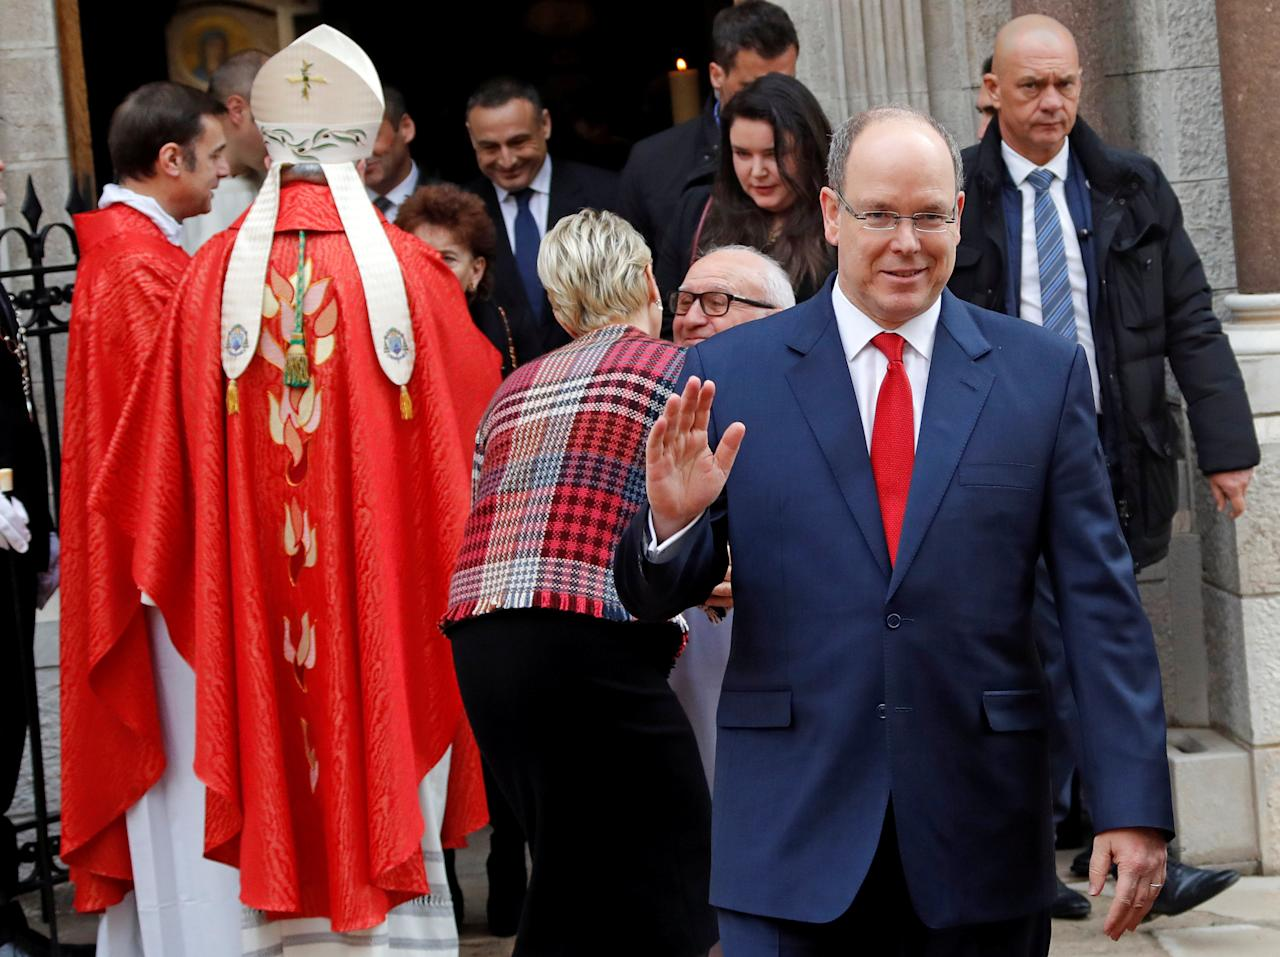 Prince Albert II of Monaco and his wife Princess Charlene leave Monaco cathedral during the traditional Sainte Devote procession in Monaco, January 27, 2018.     REUTERS/Eric Gaillard